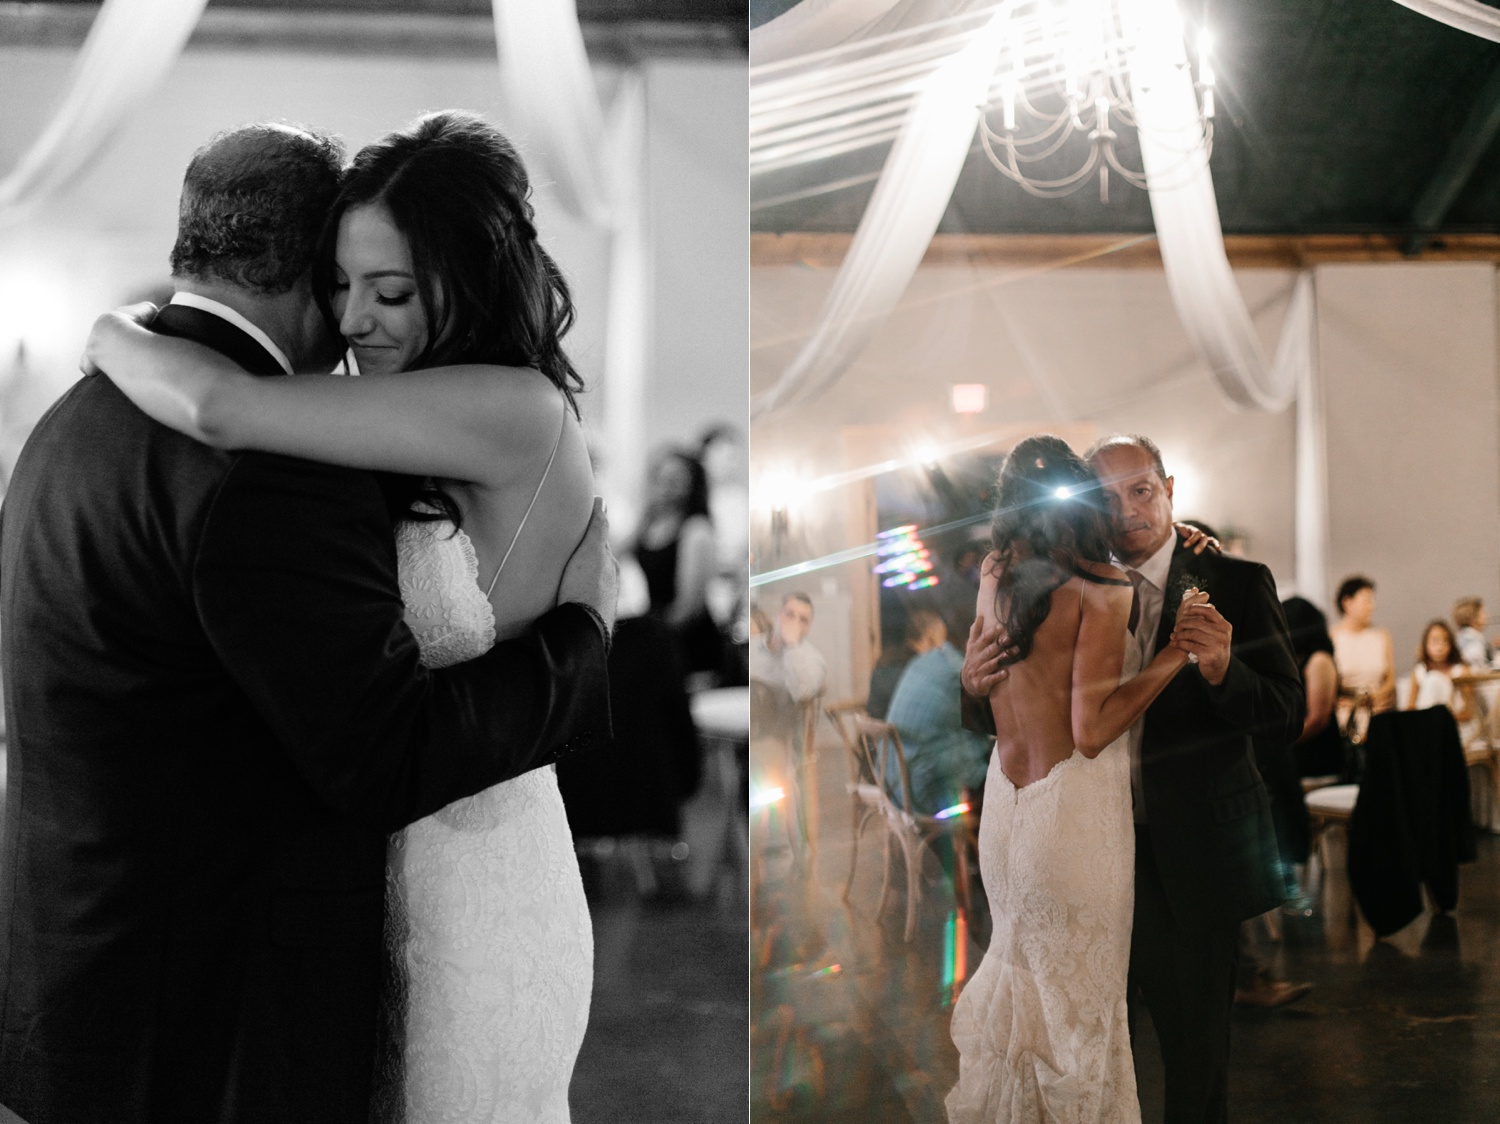 Erica + Henry | a bohemian inspired wedding at Chandlers Gardens in Salina, TX by North Texas Wedding Photographer Rachel Meagan Photography 140